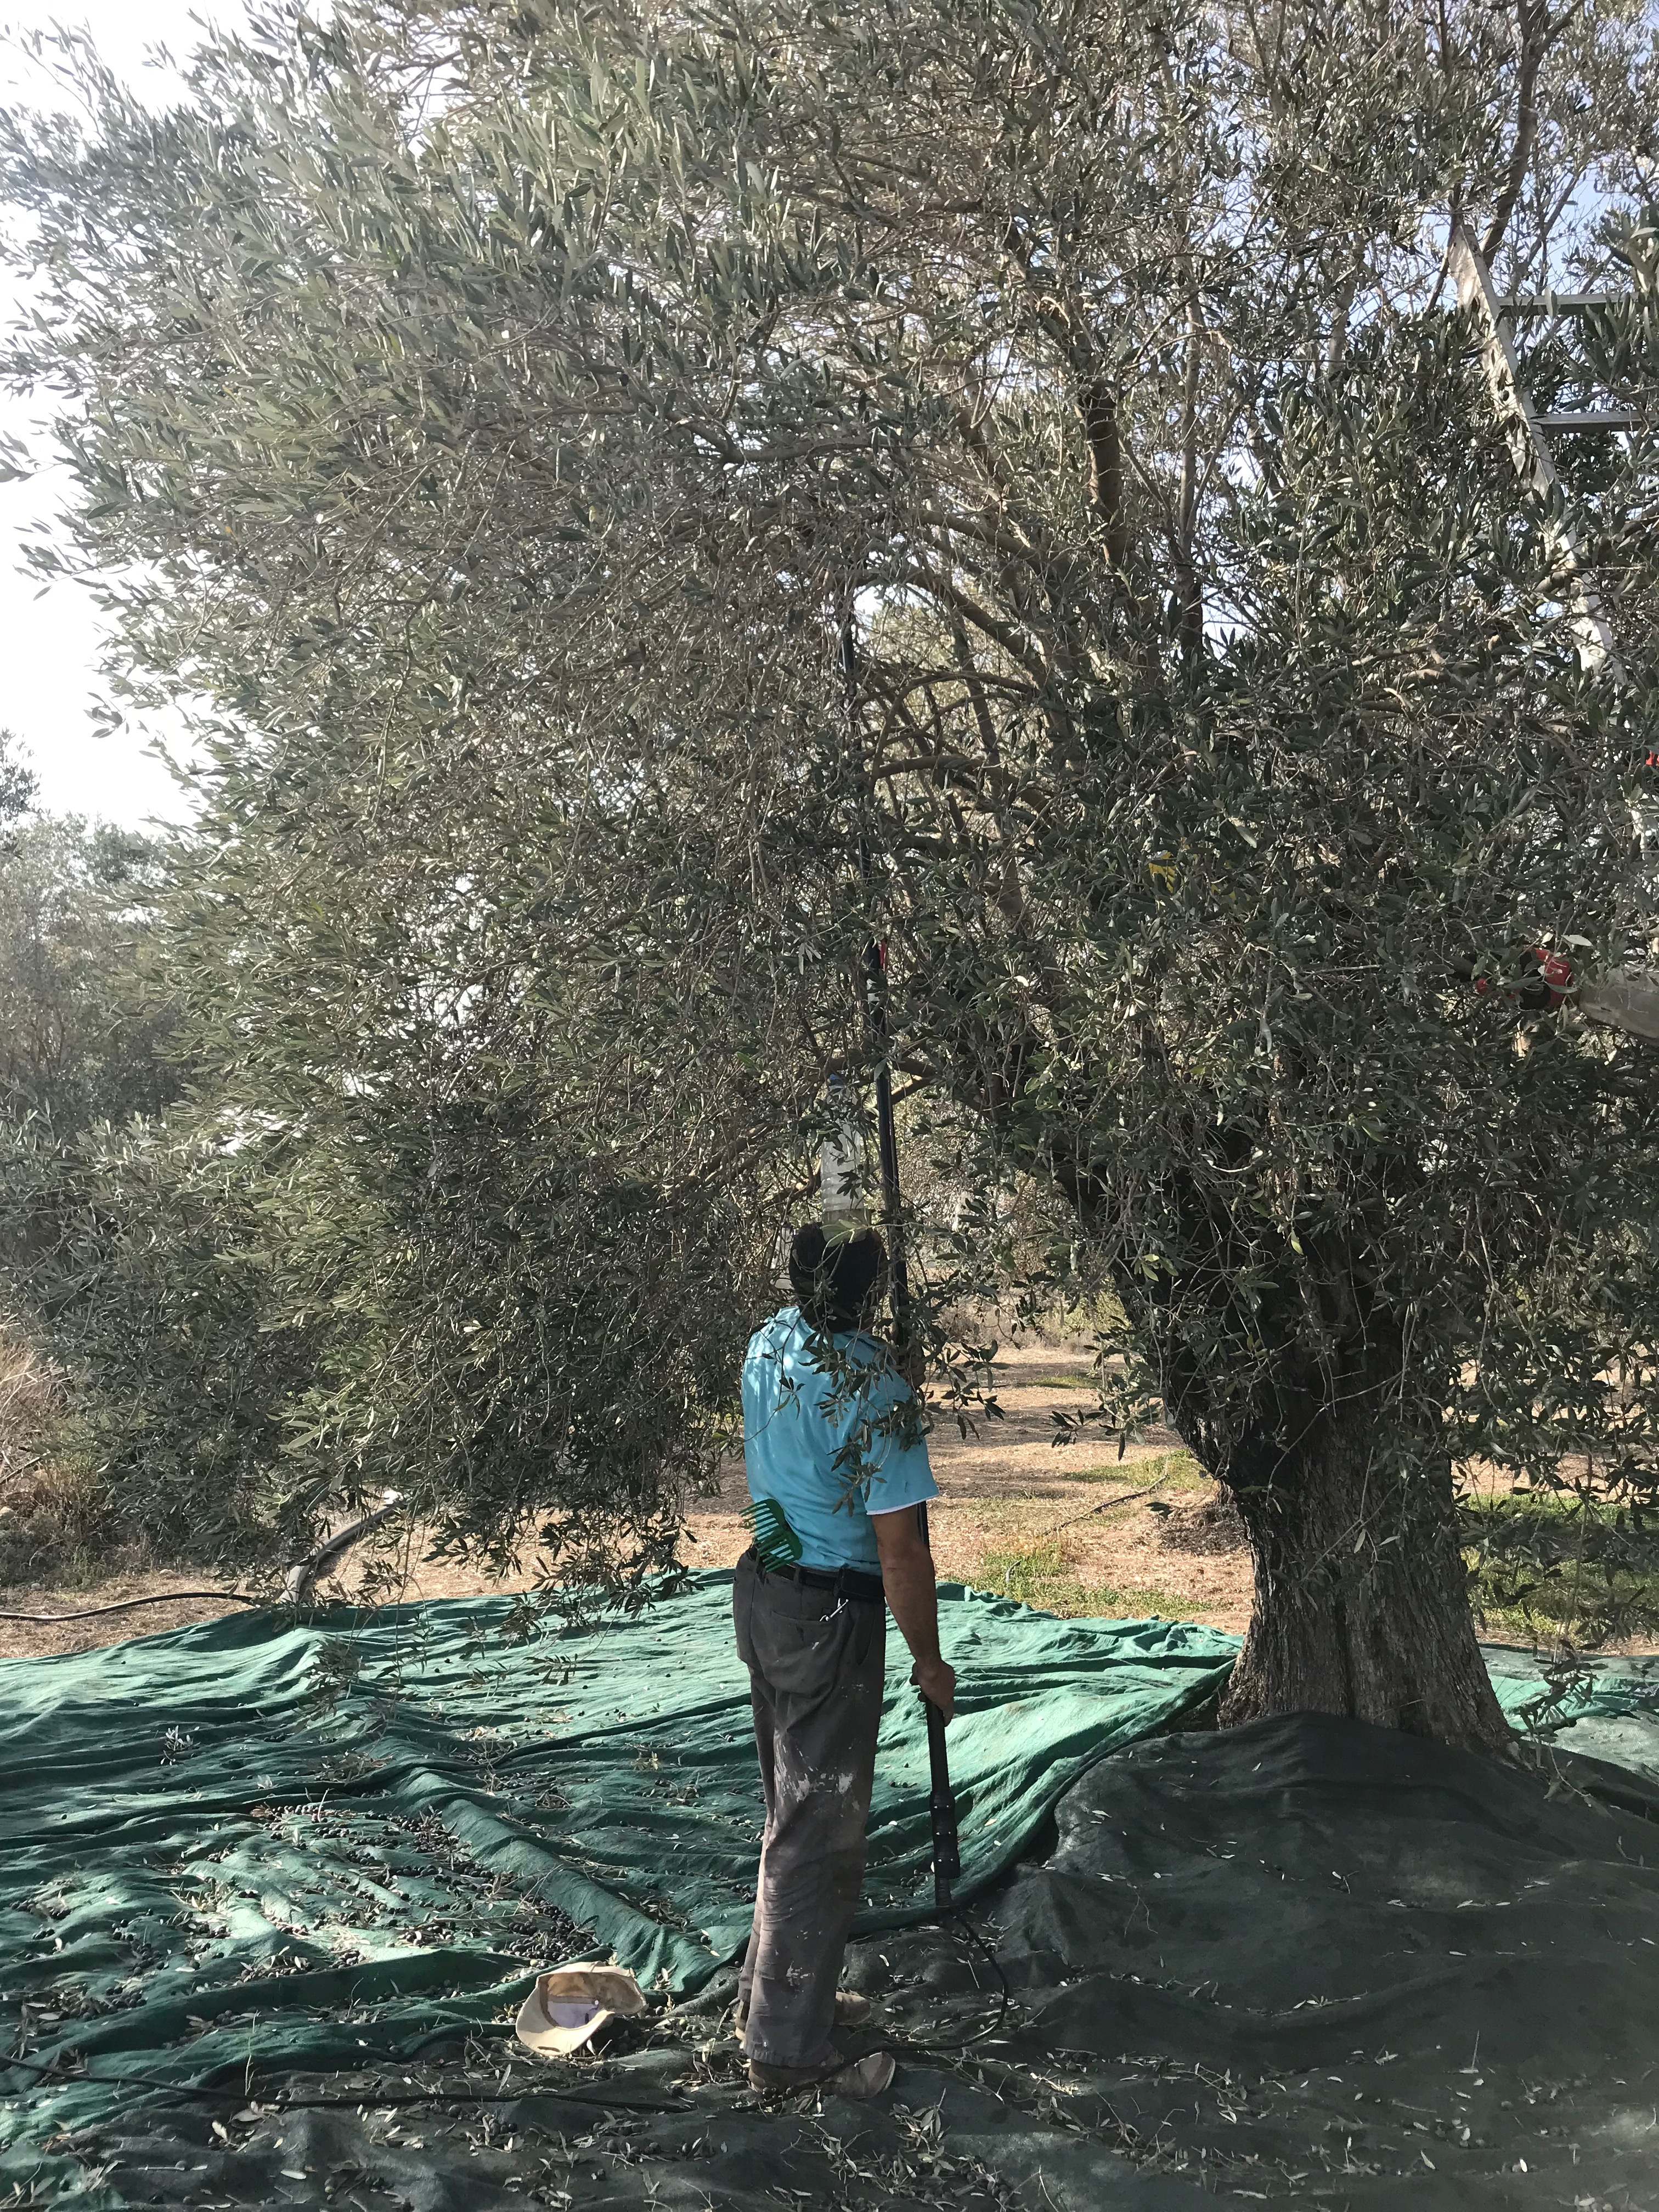 A man picks olives from a tree.